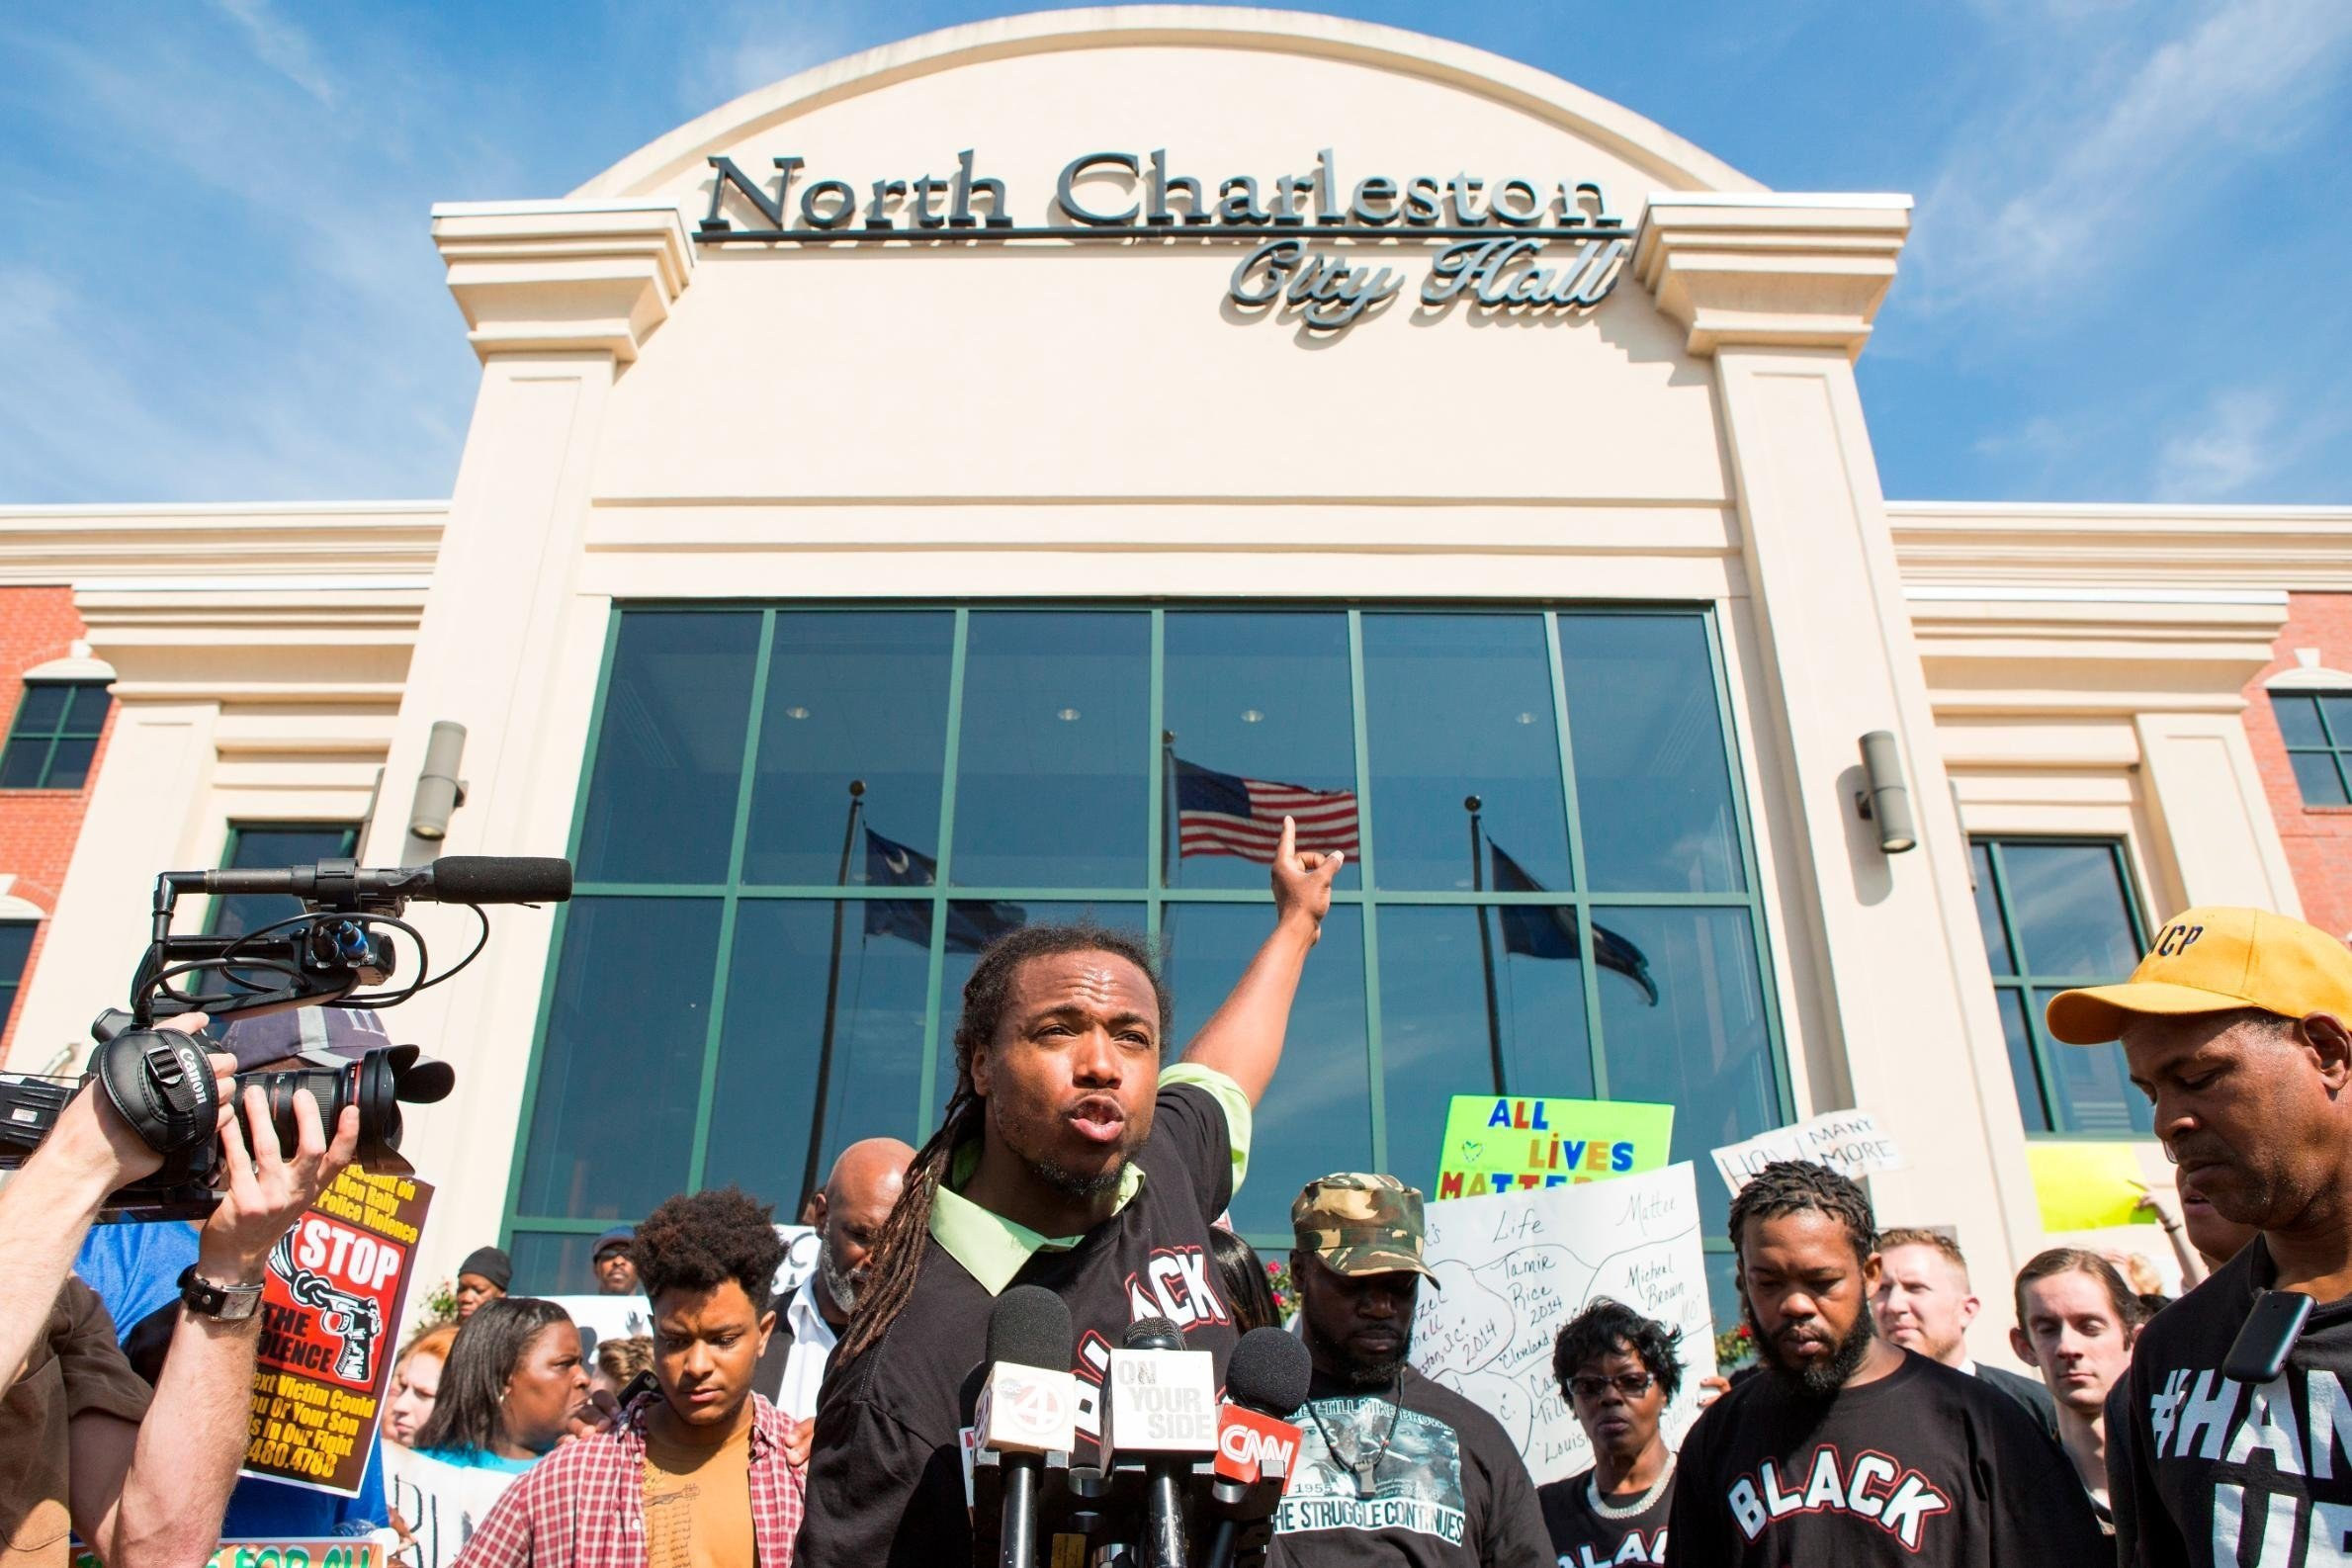 Full credit: Alex Holt/The Washington Post/Getty Images  Muhiydin Moye addresses the crowd at a 2015 Walter Scott demonstration in North Charleston.